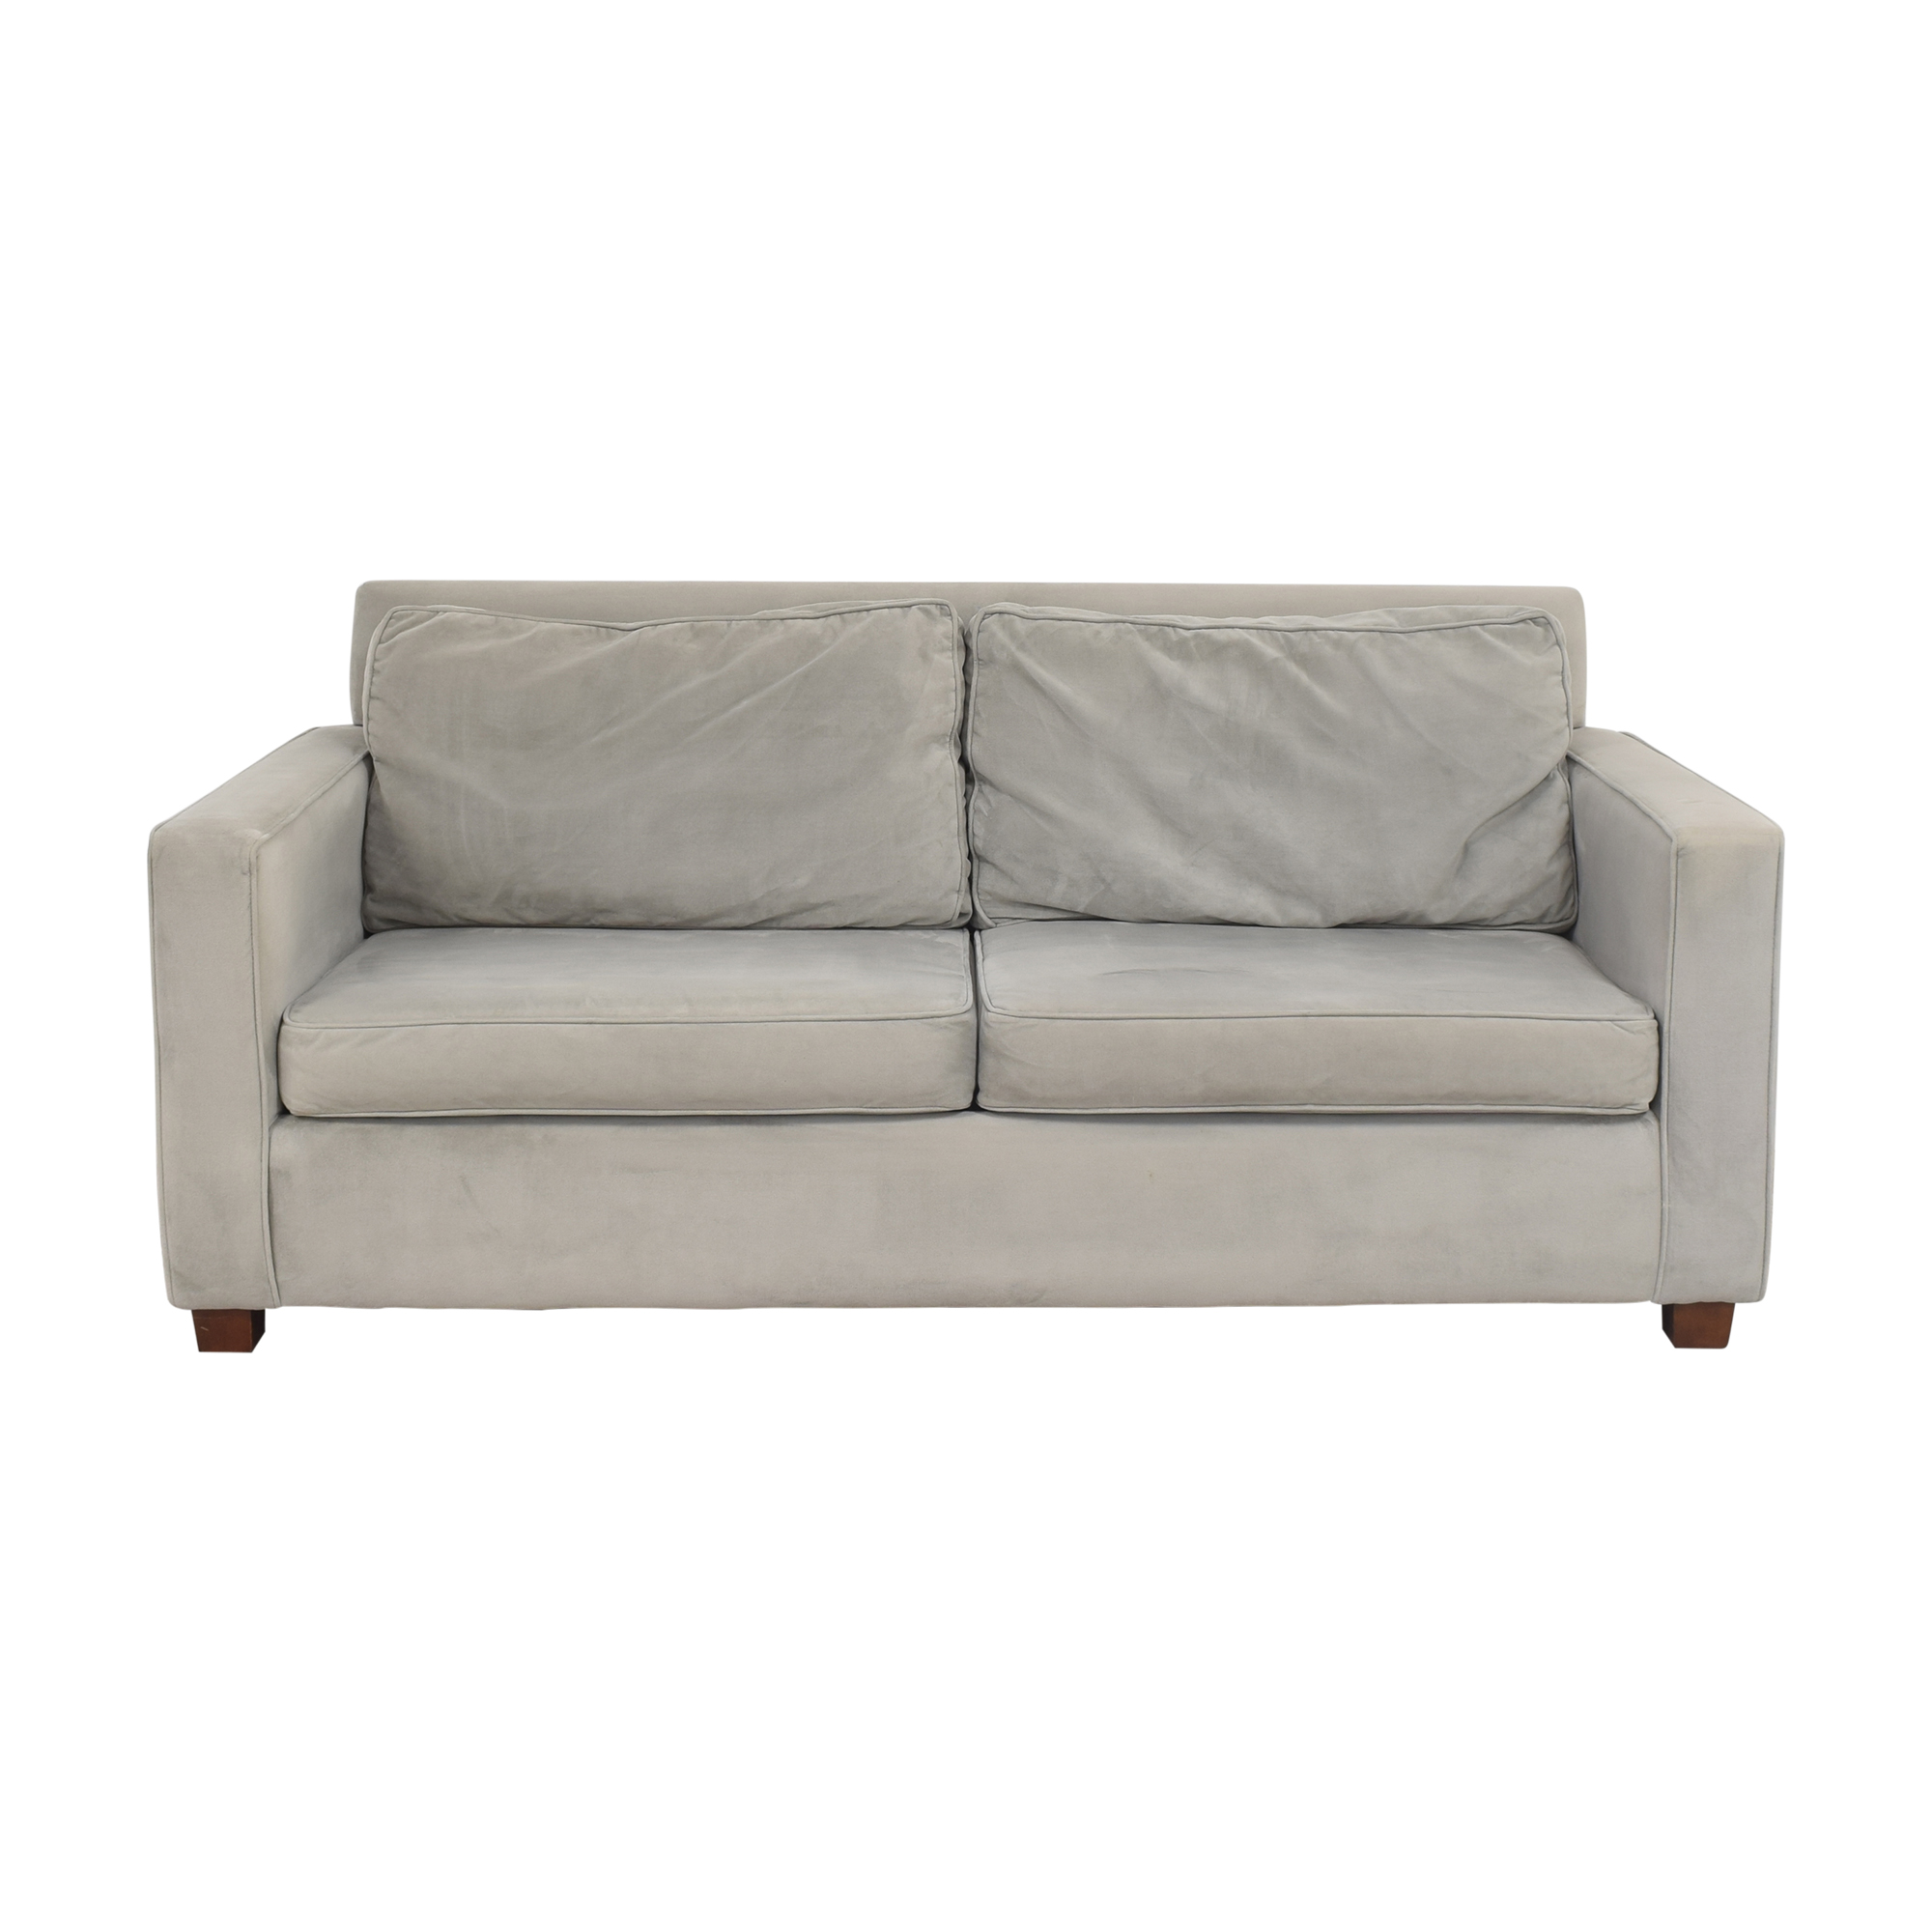 West Elm Henry Two Cushion Sofa / Classic Sofas